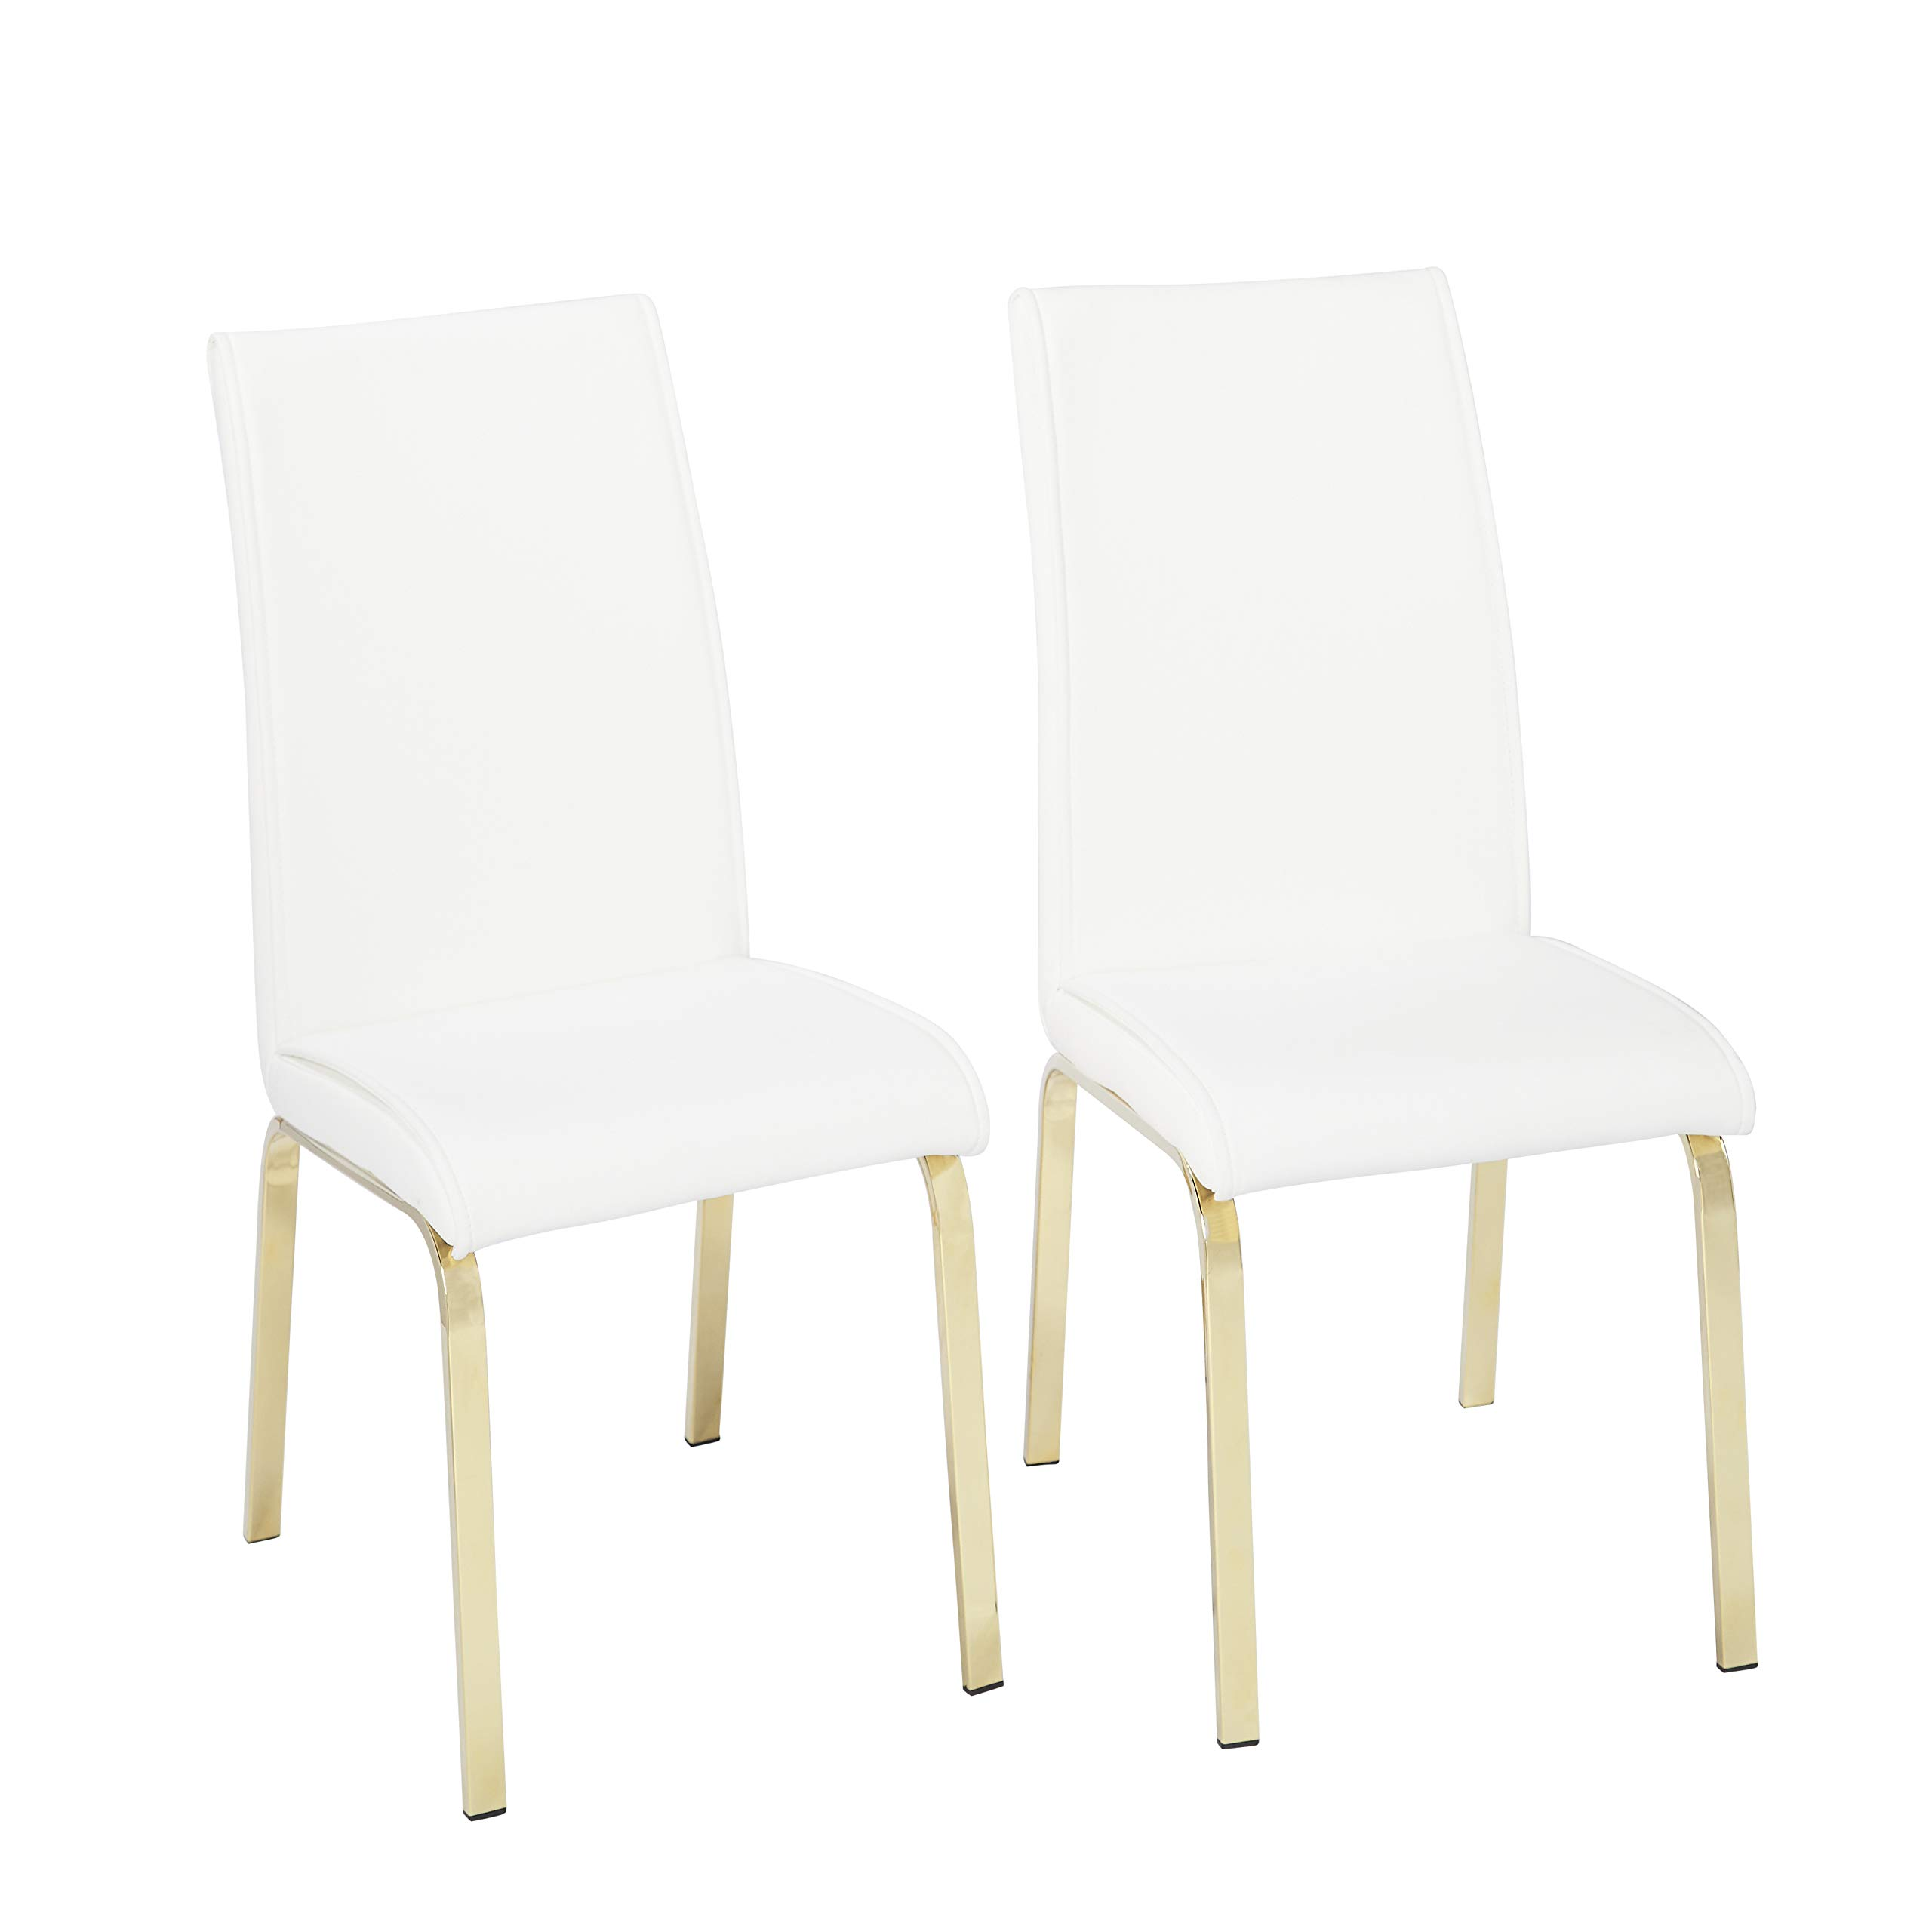 Target Marketing Systems 23118WHT PR Uptown Modern Upholstered Faux Leather Parson Dining Chair, Set of 2, White by Target Marketing Systems